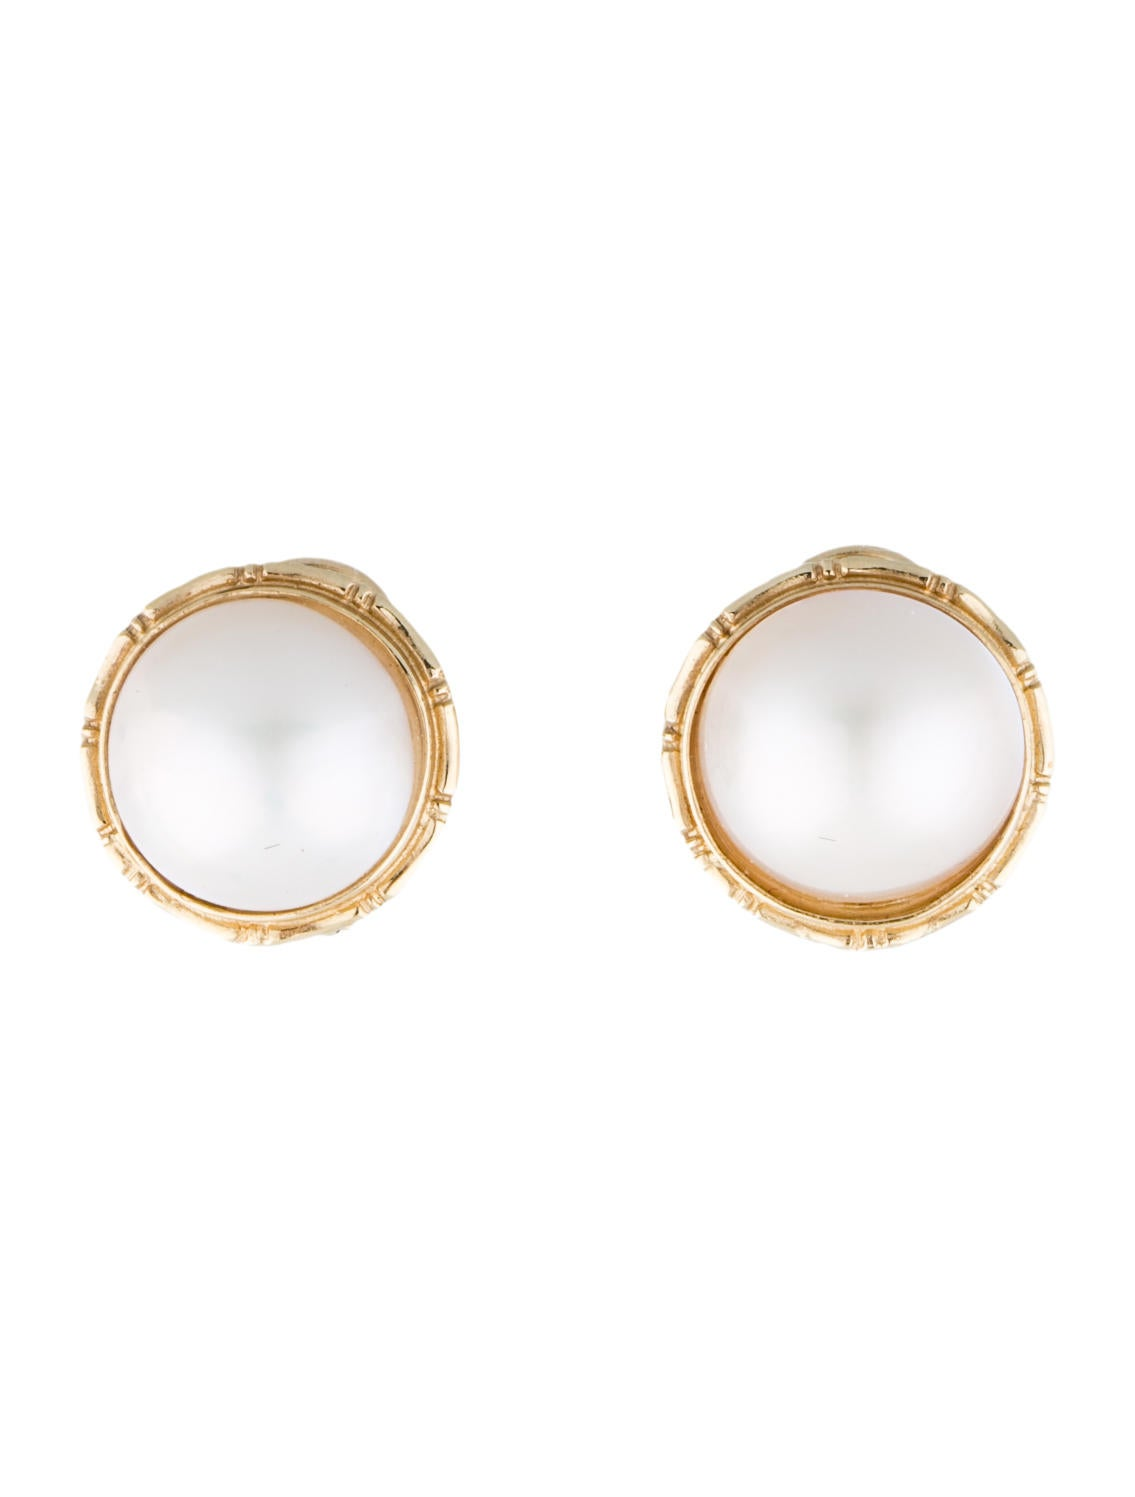 14k mabe pearl earrings earrings fje24697 the realreal